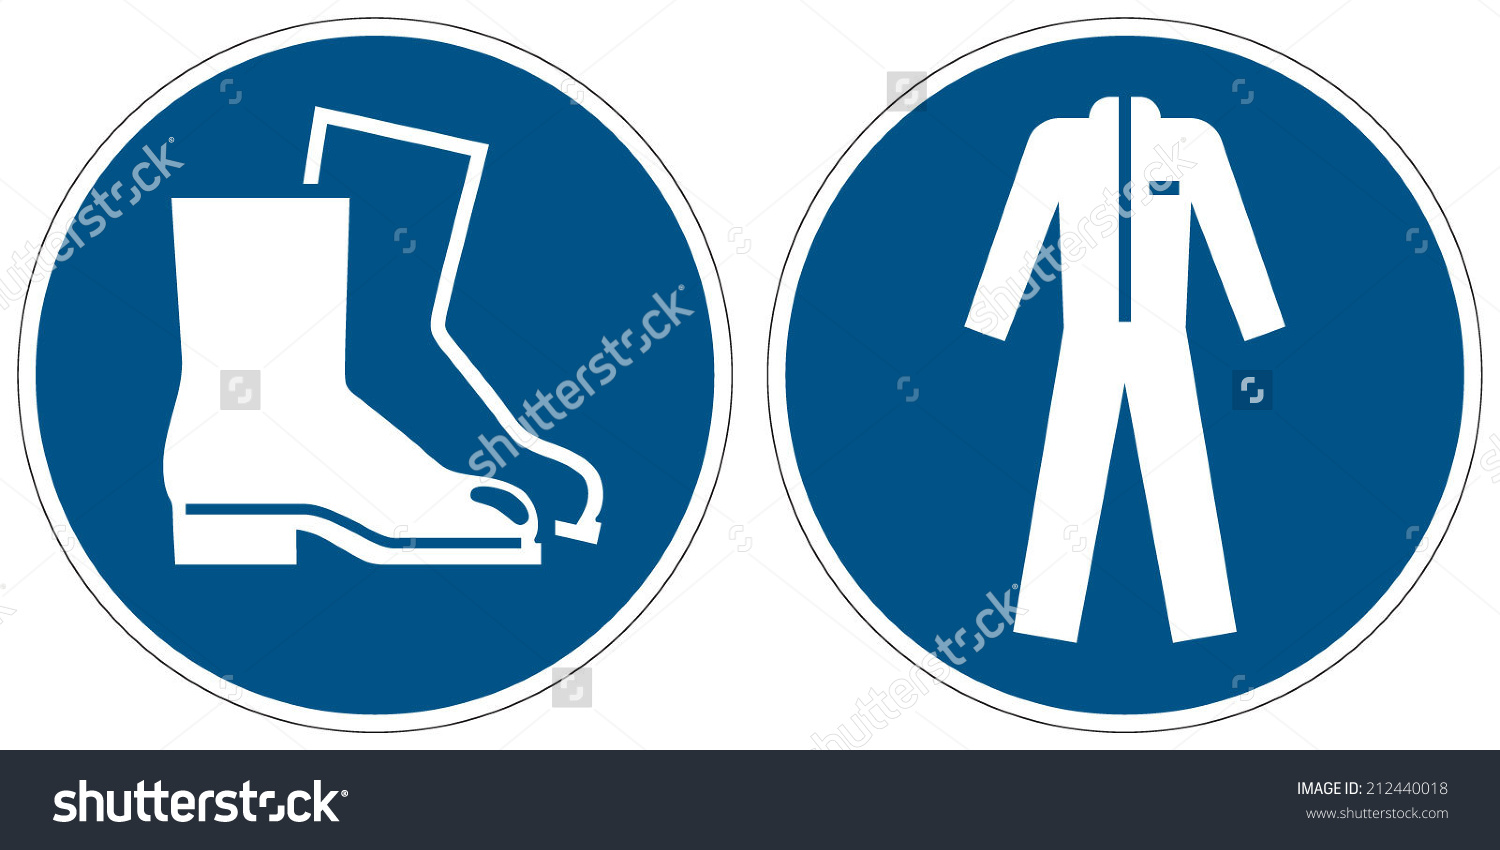 Wear Safety Footwear Wear Protective Clothing Stock Vector.